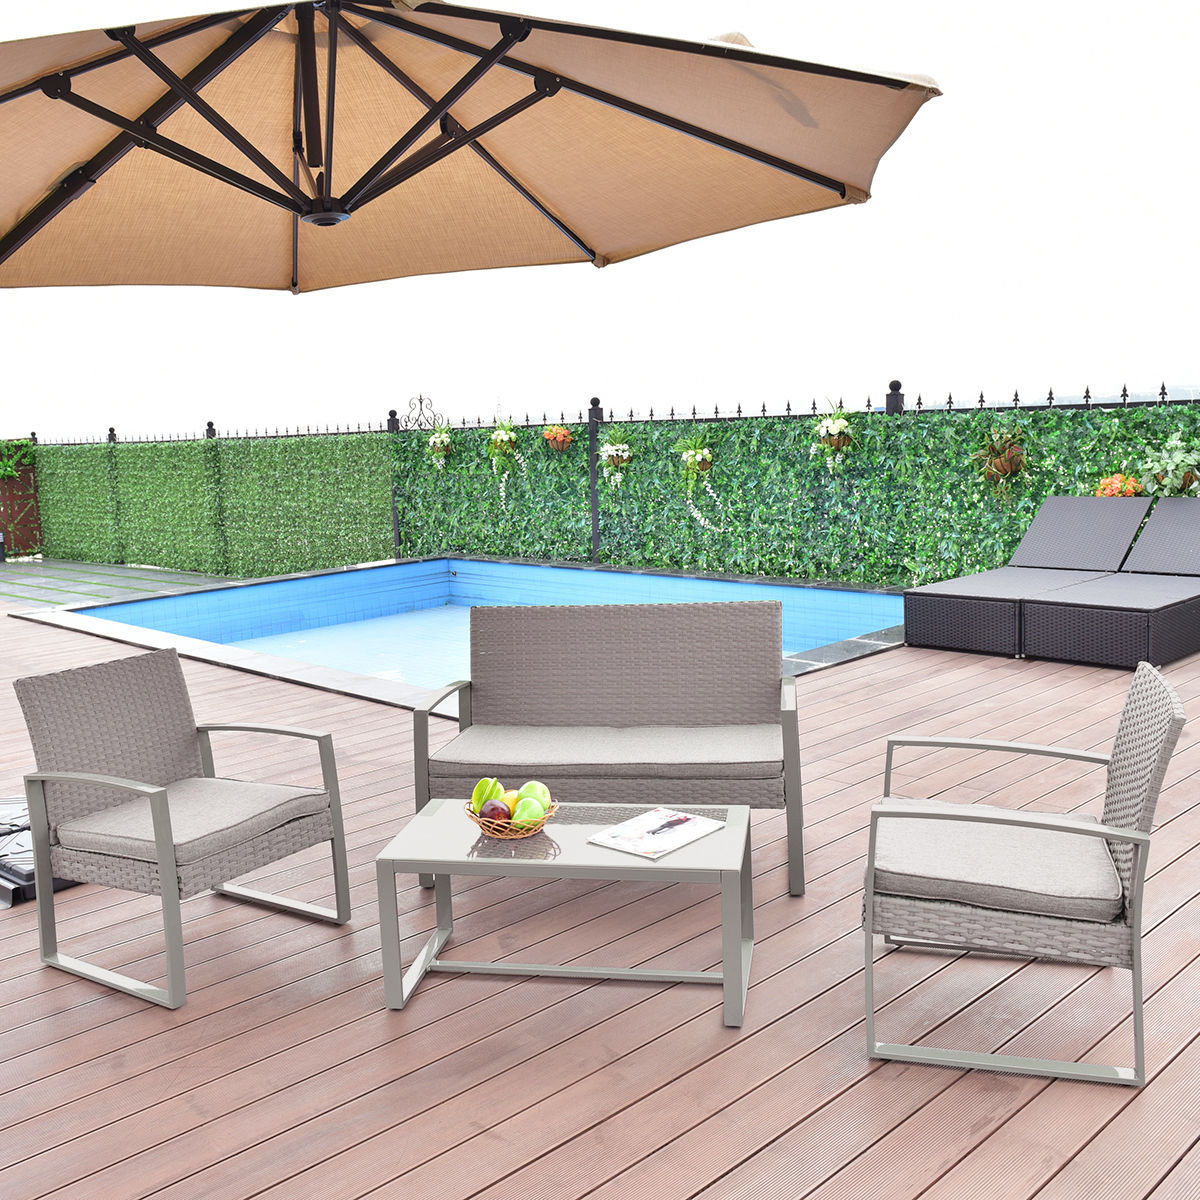 Costway 4 PCS Outdoor Patio Furniture Set Wicker Rattan Table Chair W Cushions Gray by Costway